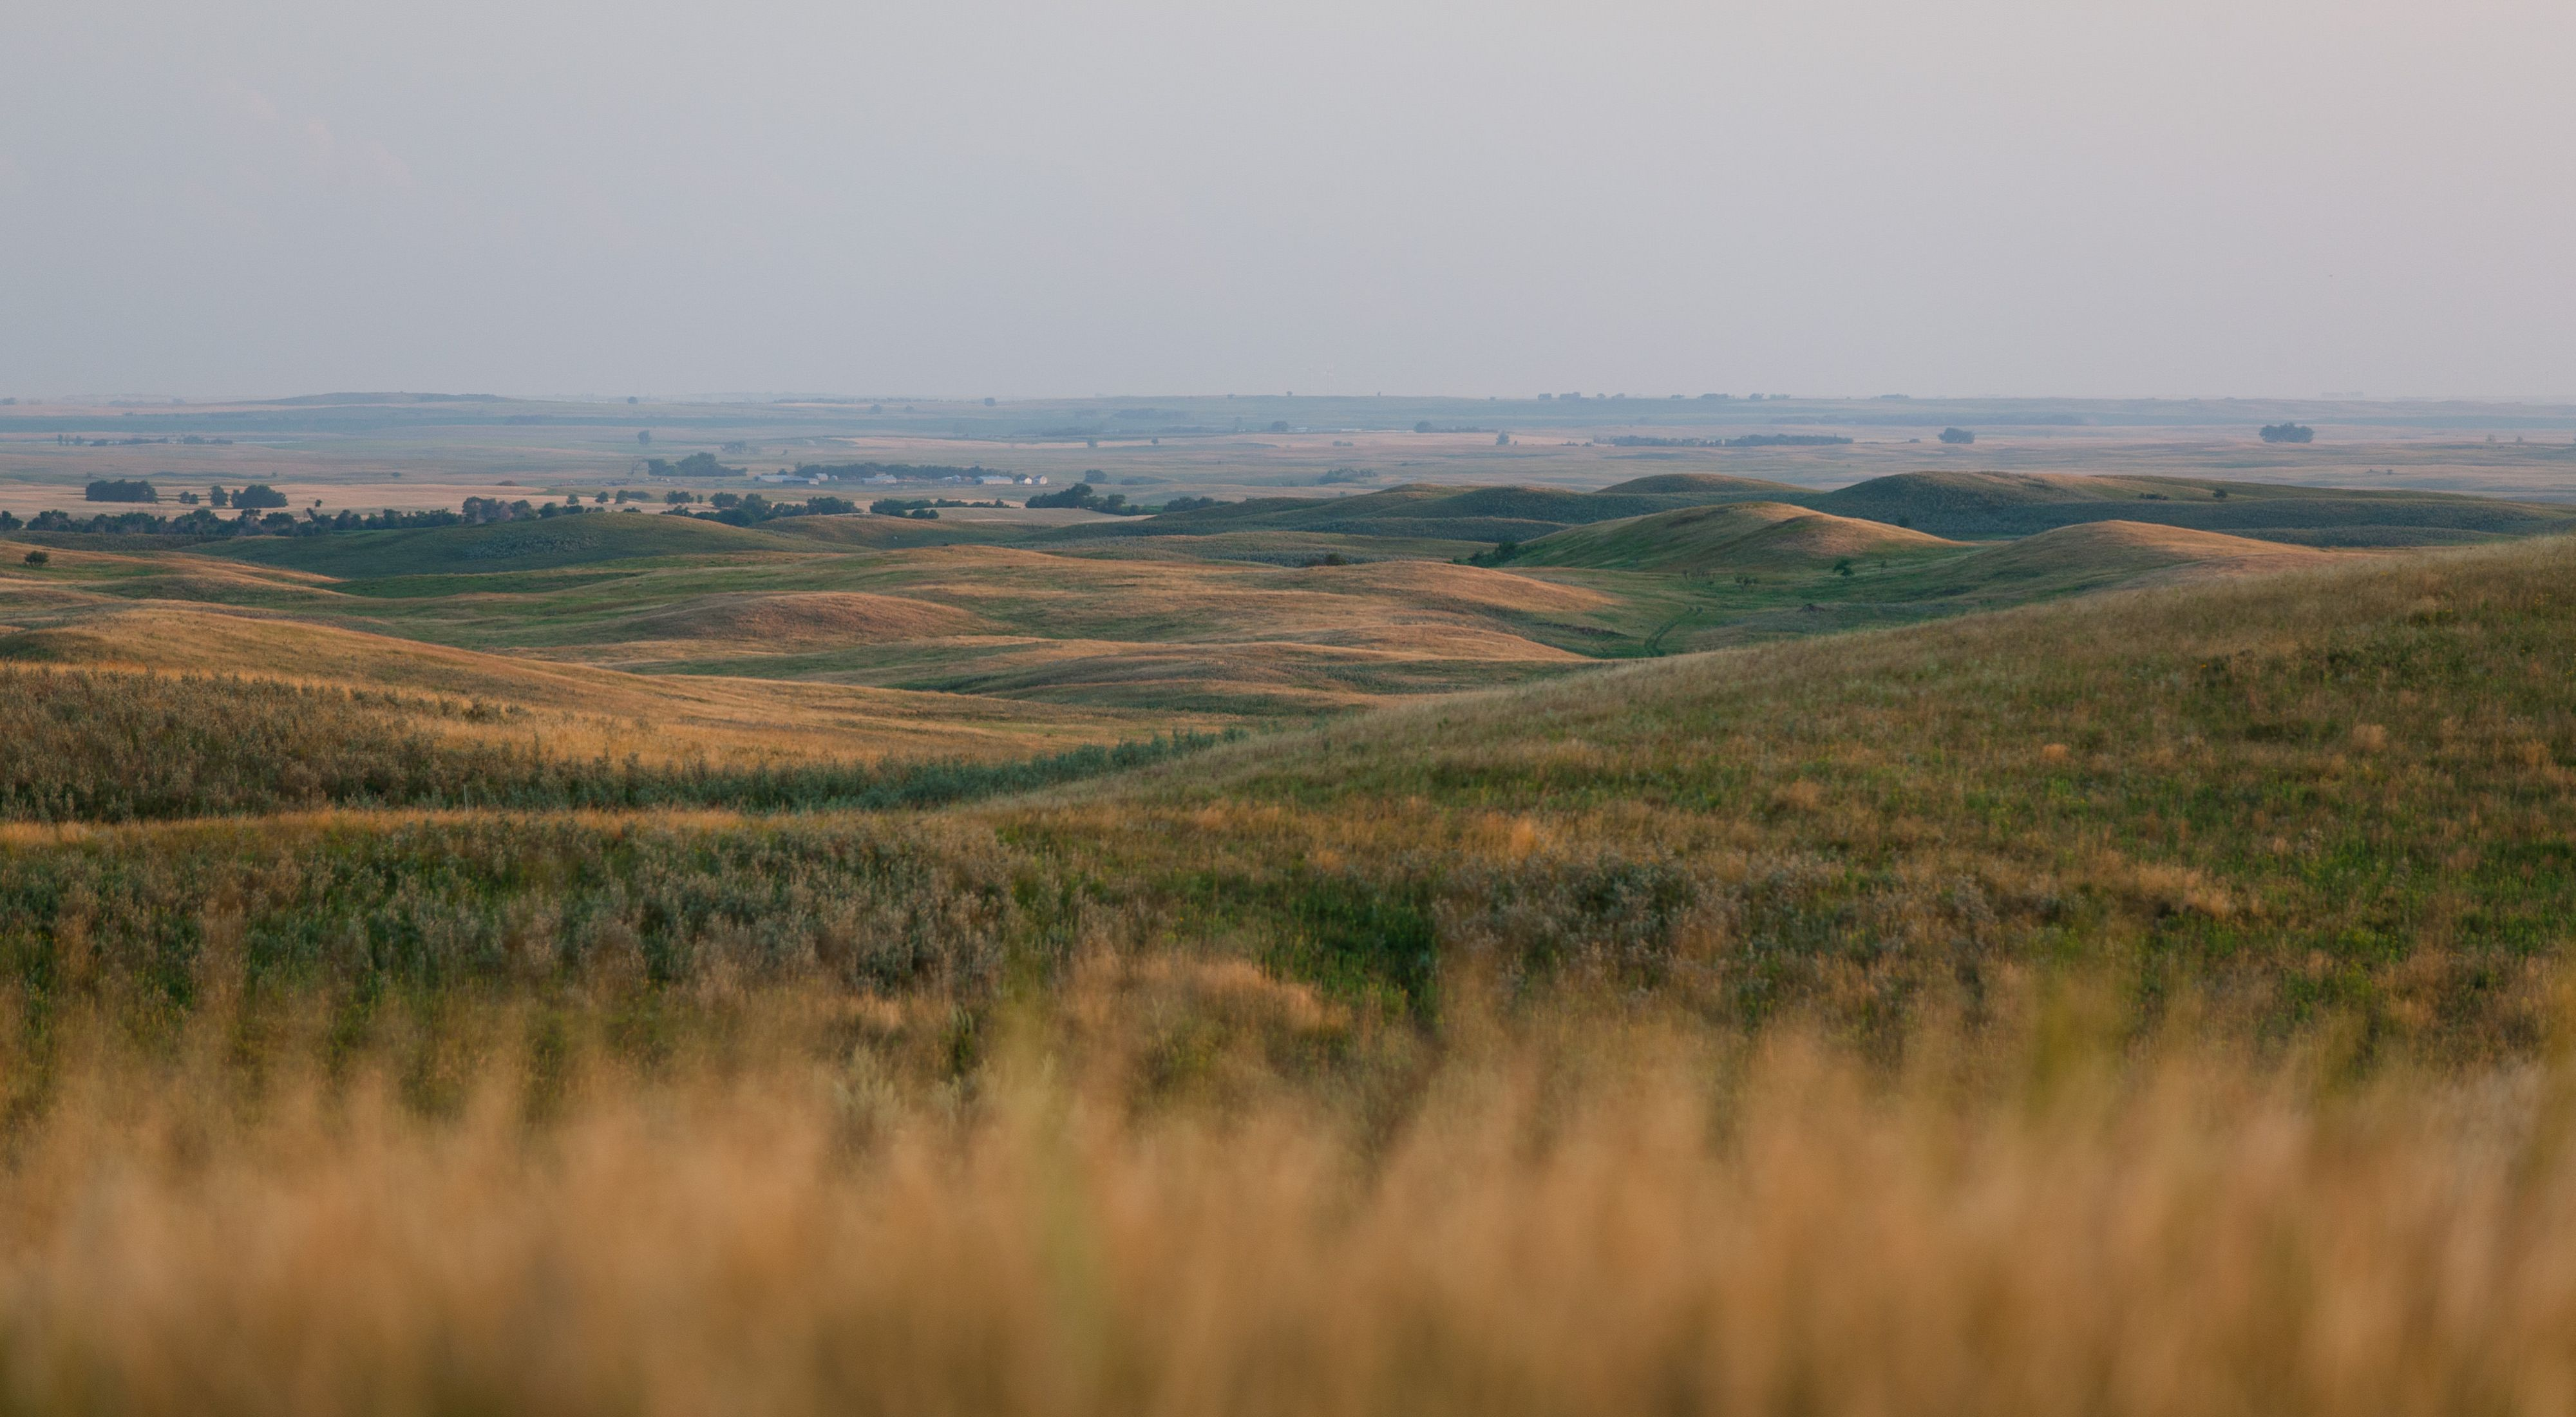 Landscape view of Davis Ranch in North Dakota